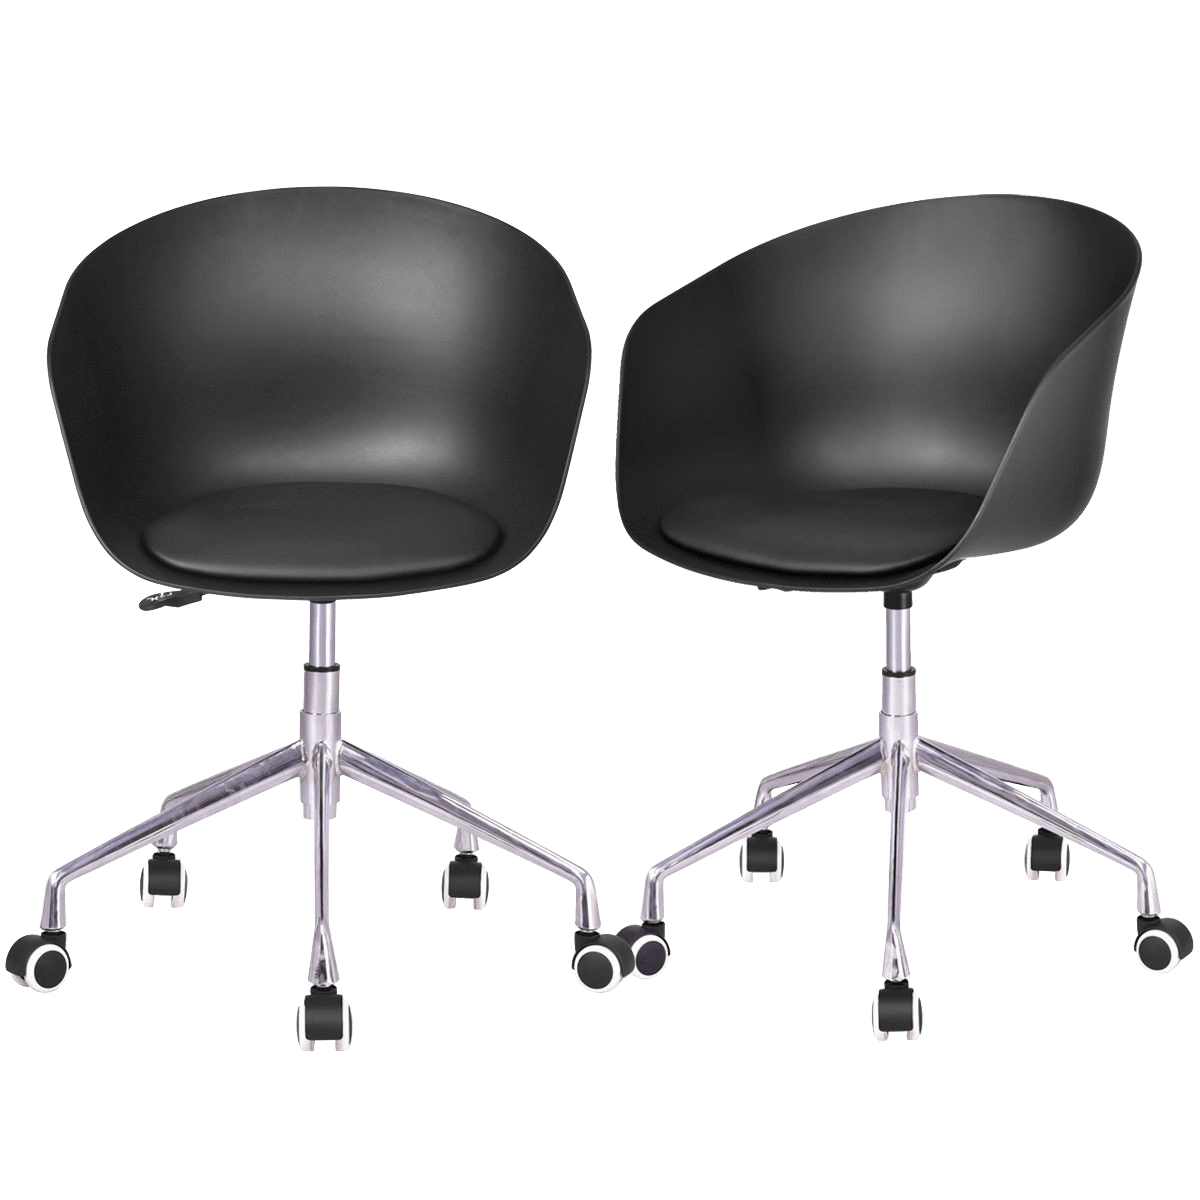 Height Adjustable Chair Set Of 2 Pp Swivel Height Adjustable Rolling Desk Chairs